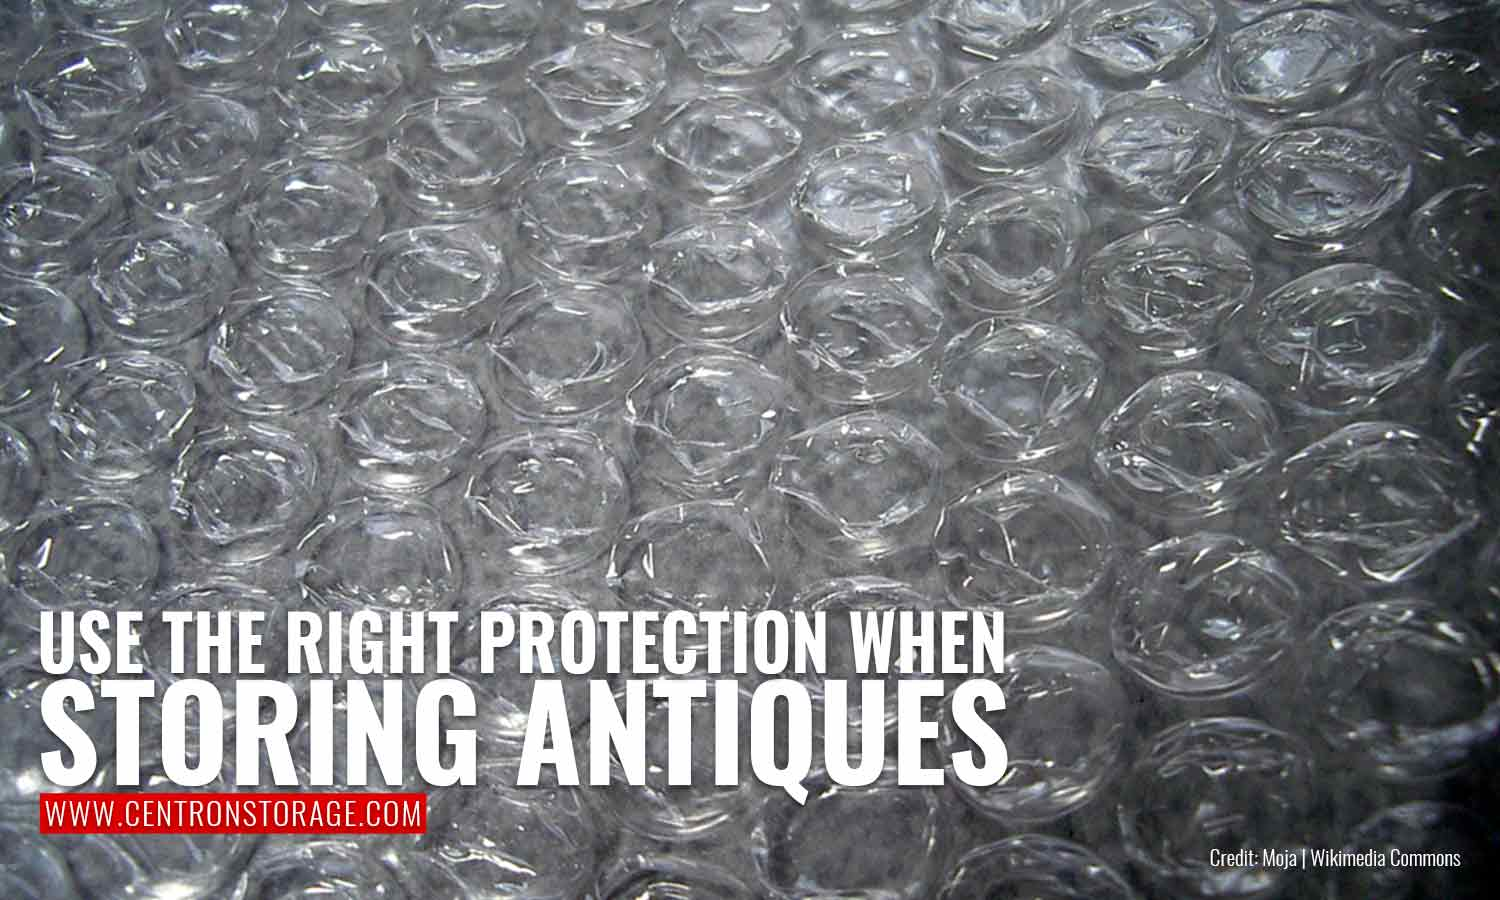 Use the right protection when storing antiques